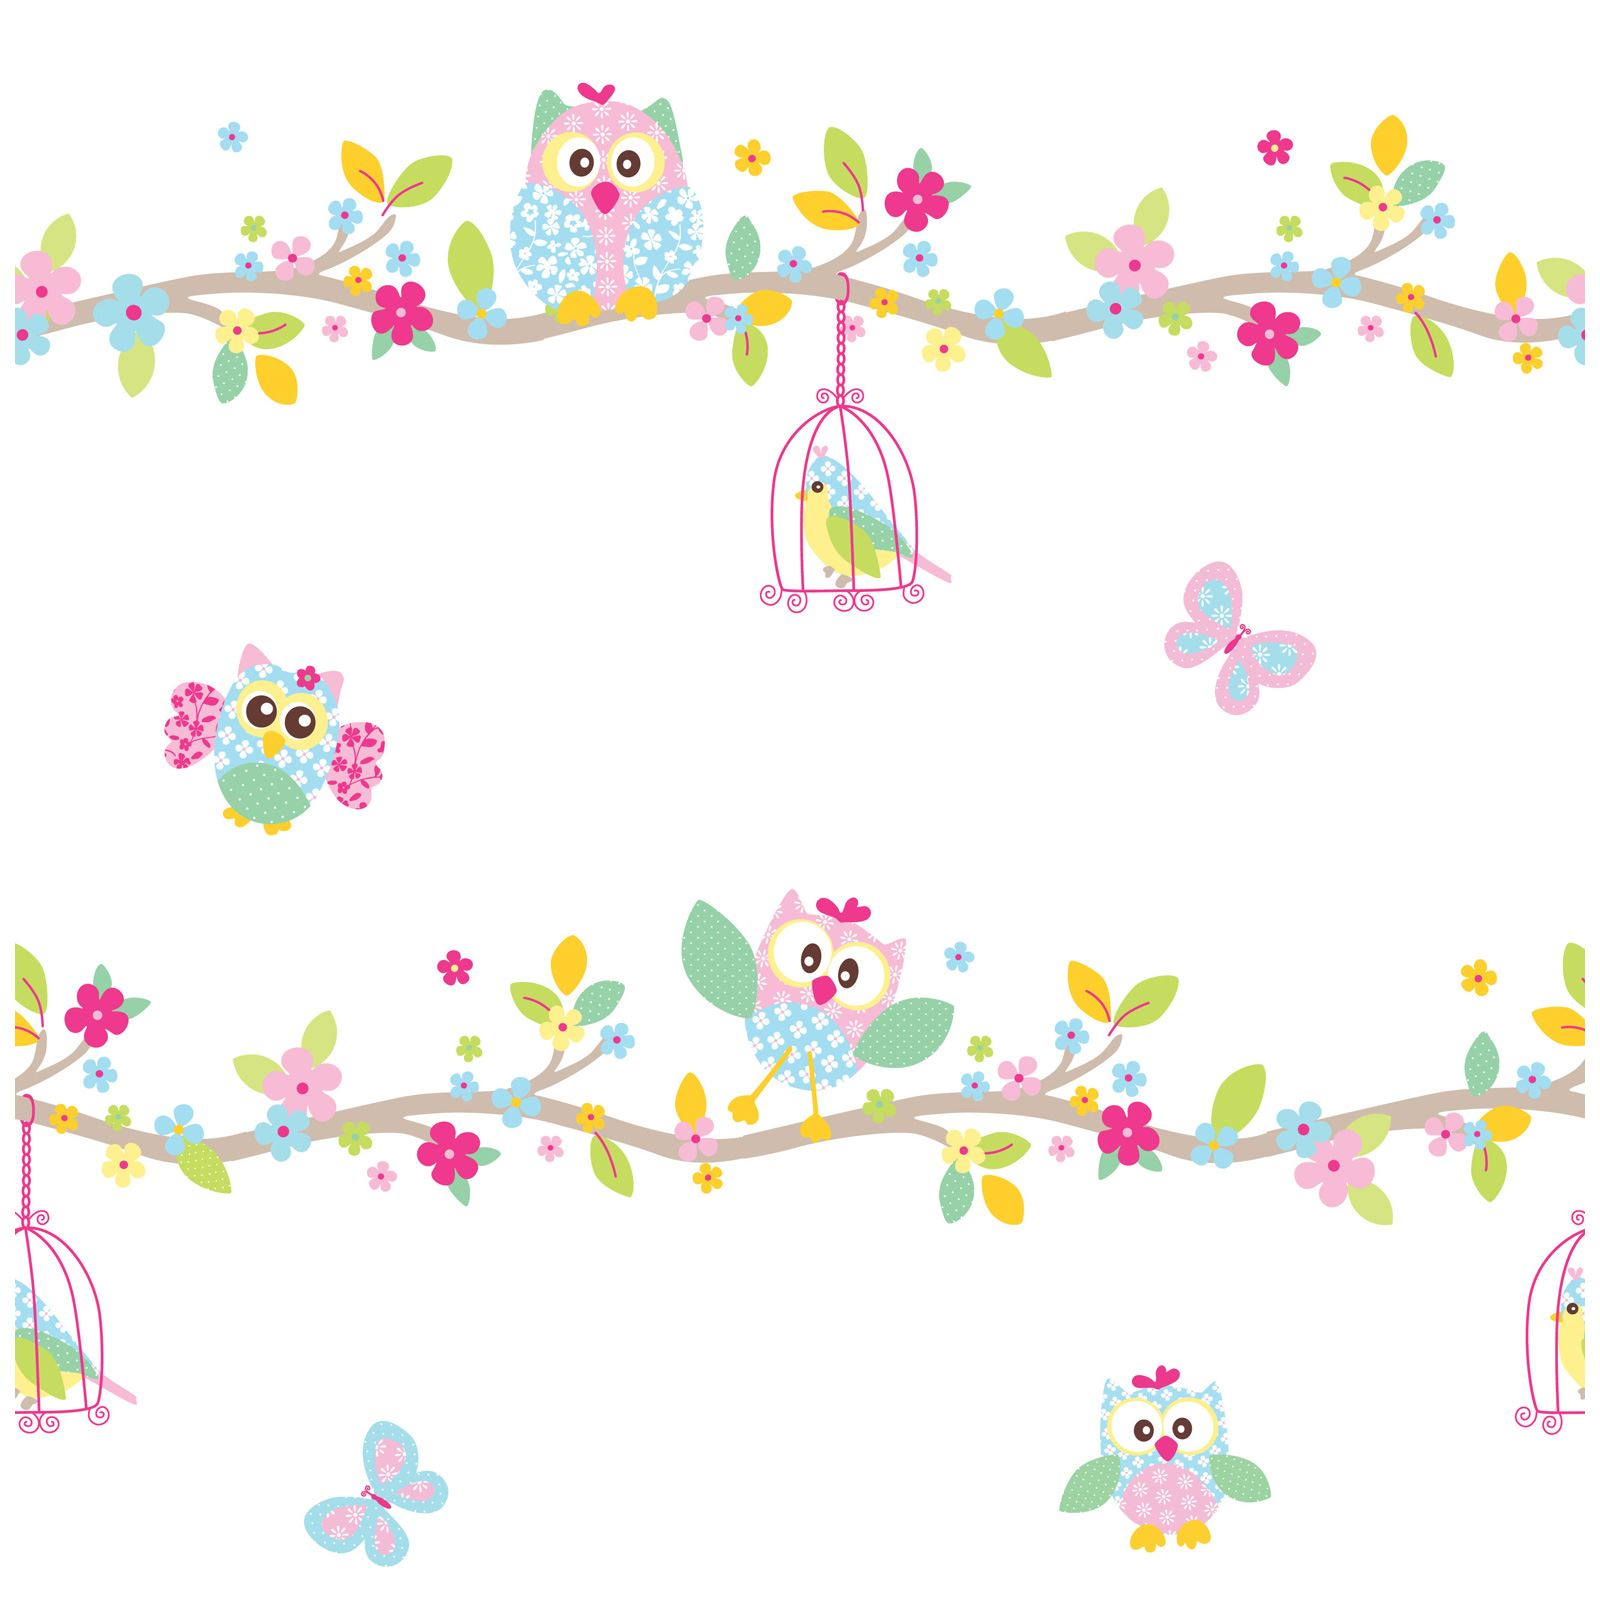 PATCHWORK OWL WALLPAPER AND BORDER WHITE PINK PASTEL. PATCHWORK OWL WALLPAPER AND BORDER   WHITE PINK PASTEL BEDROOM